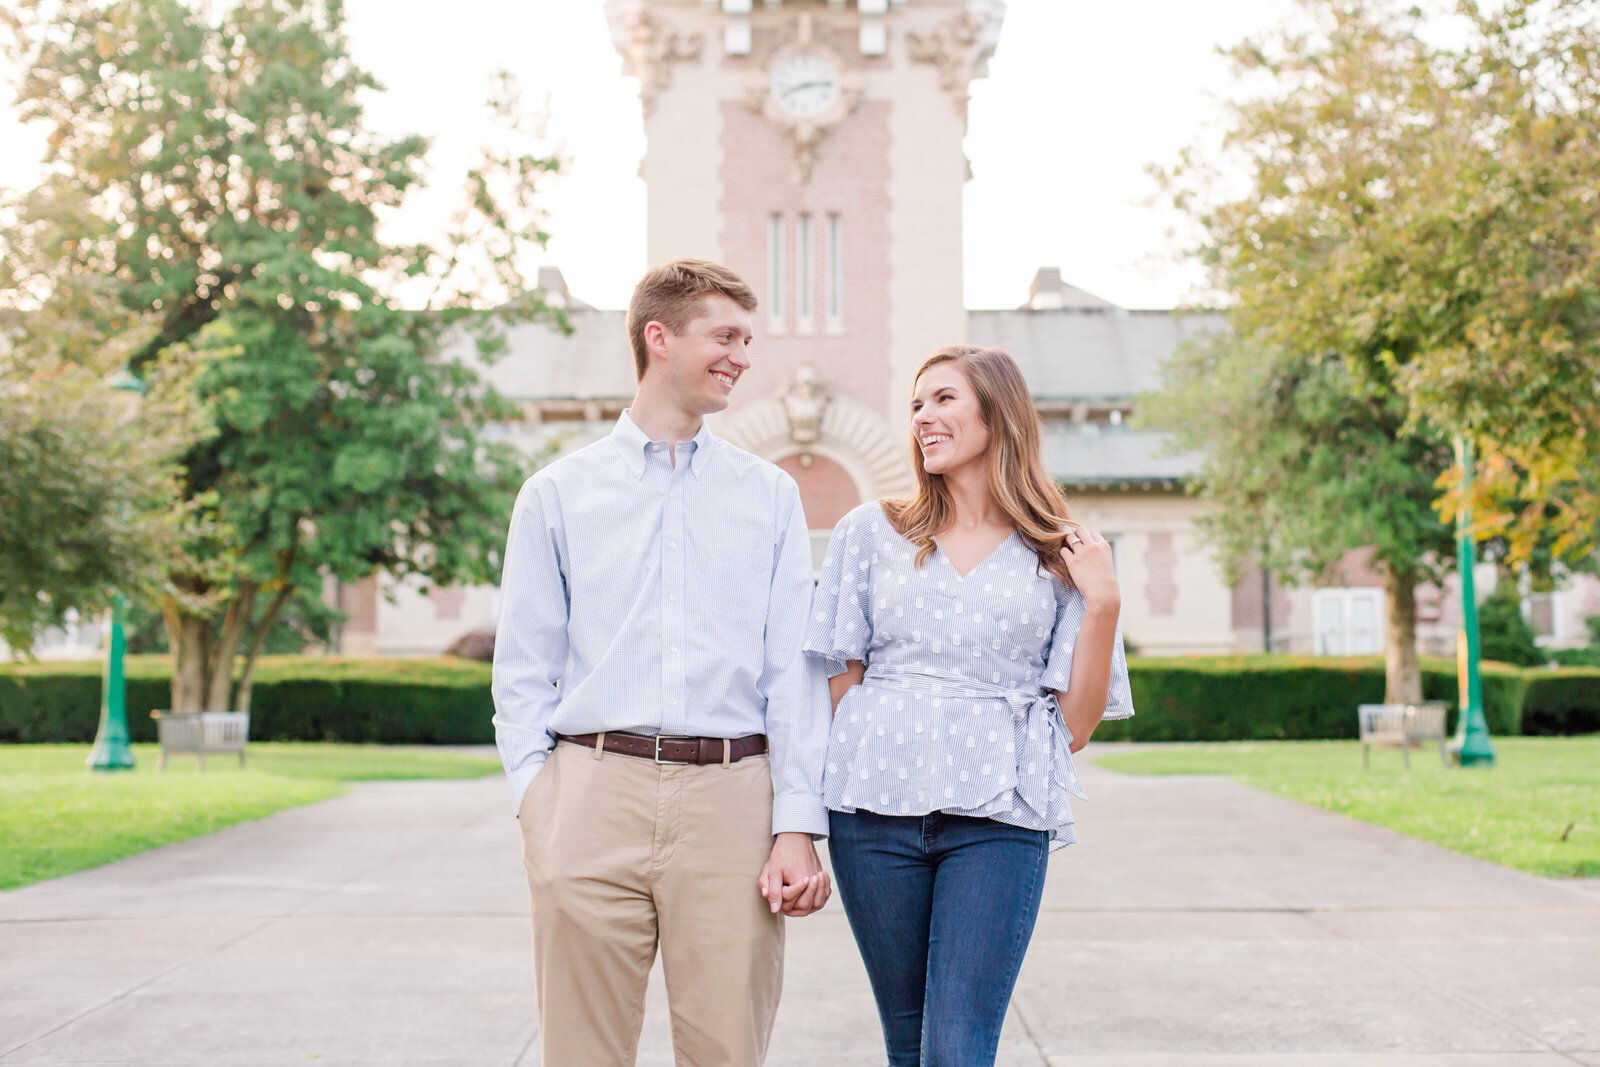 etsu-engagement-session-katy-and-alex7574